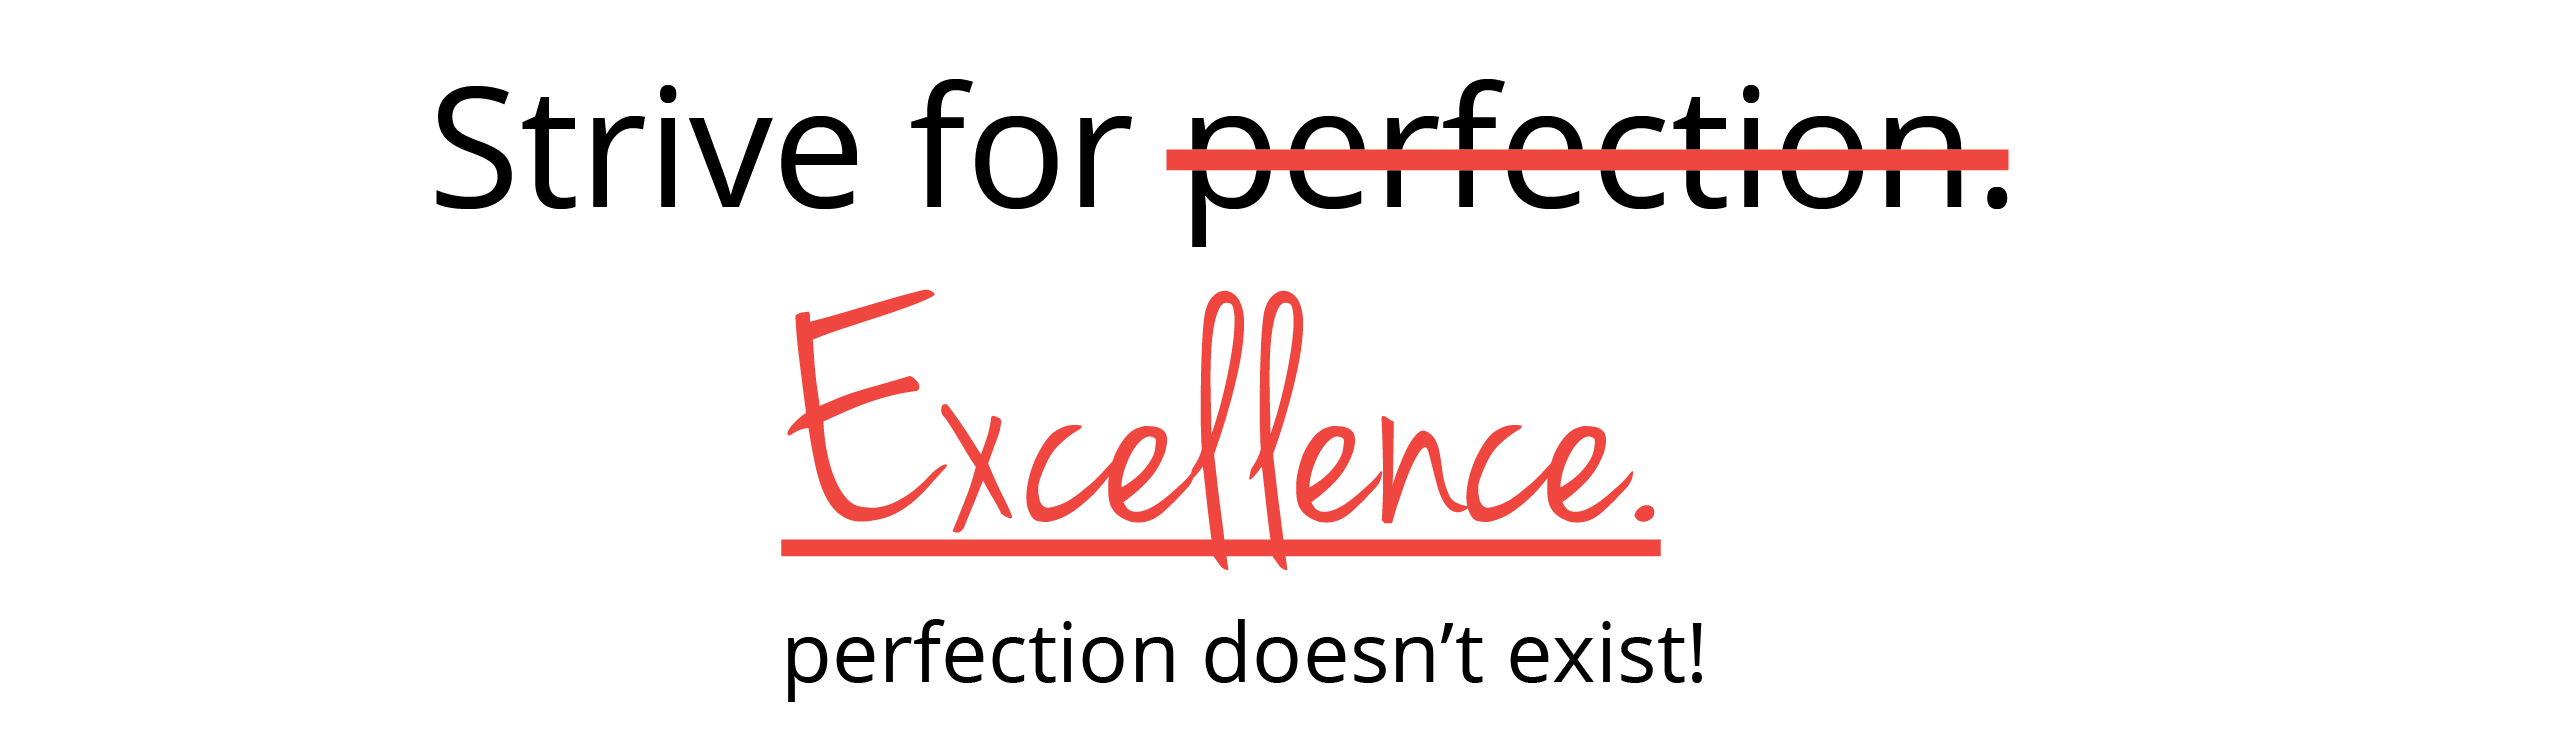 excellence-01